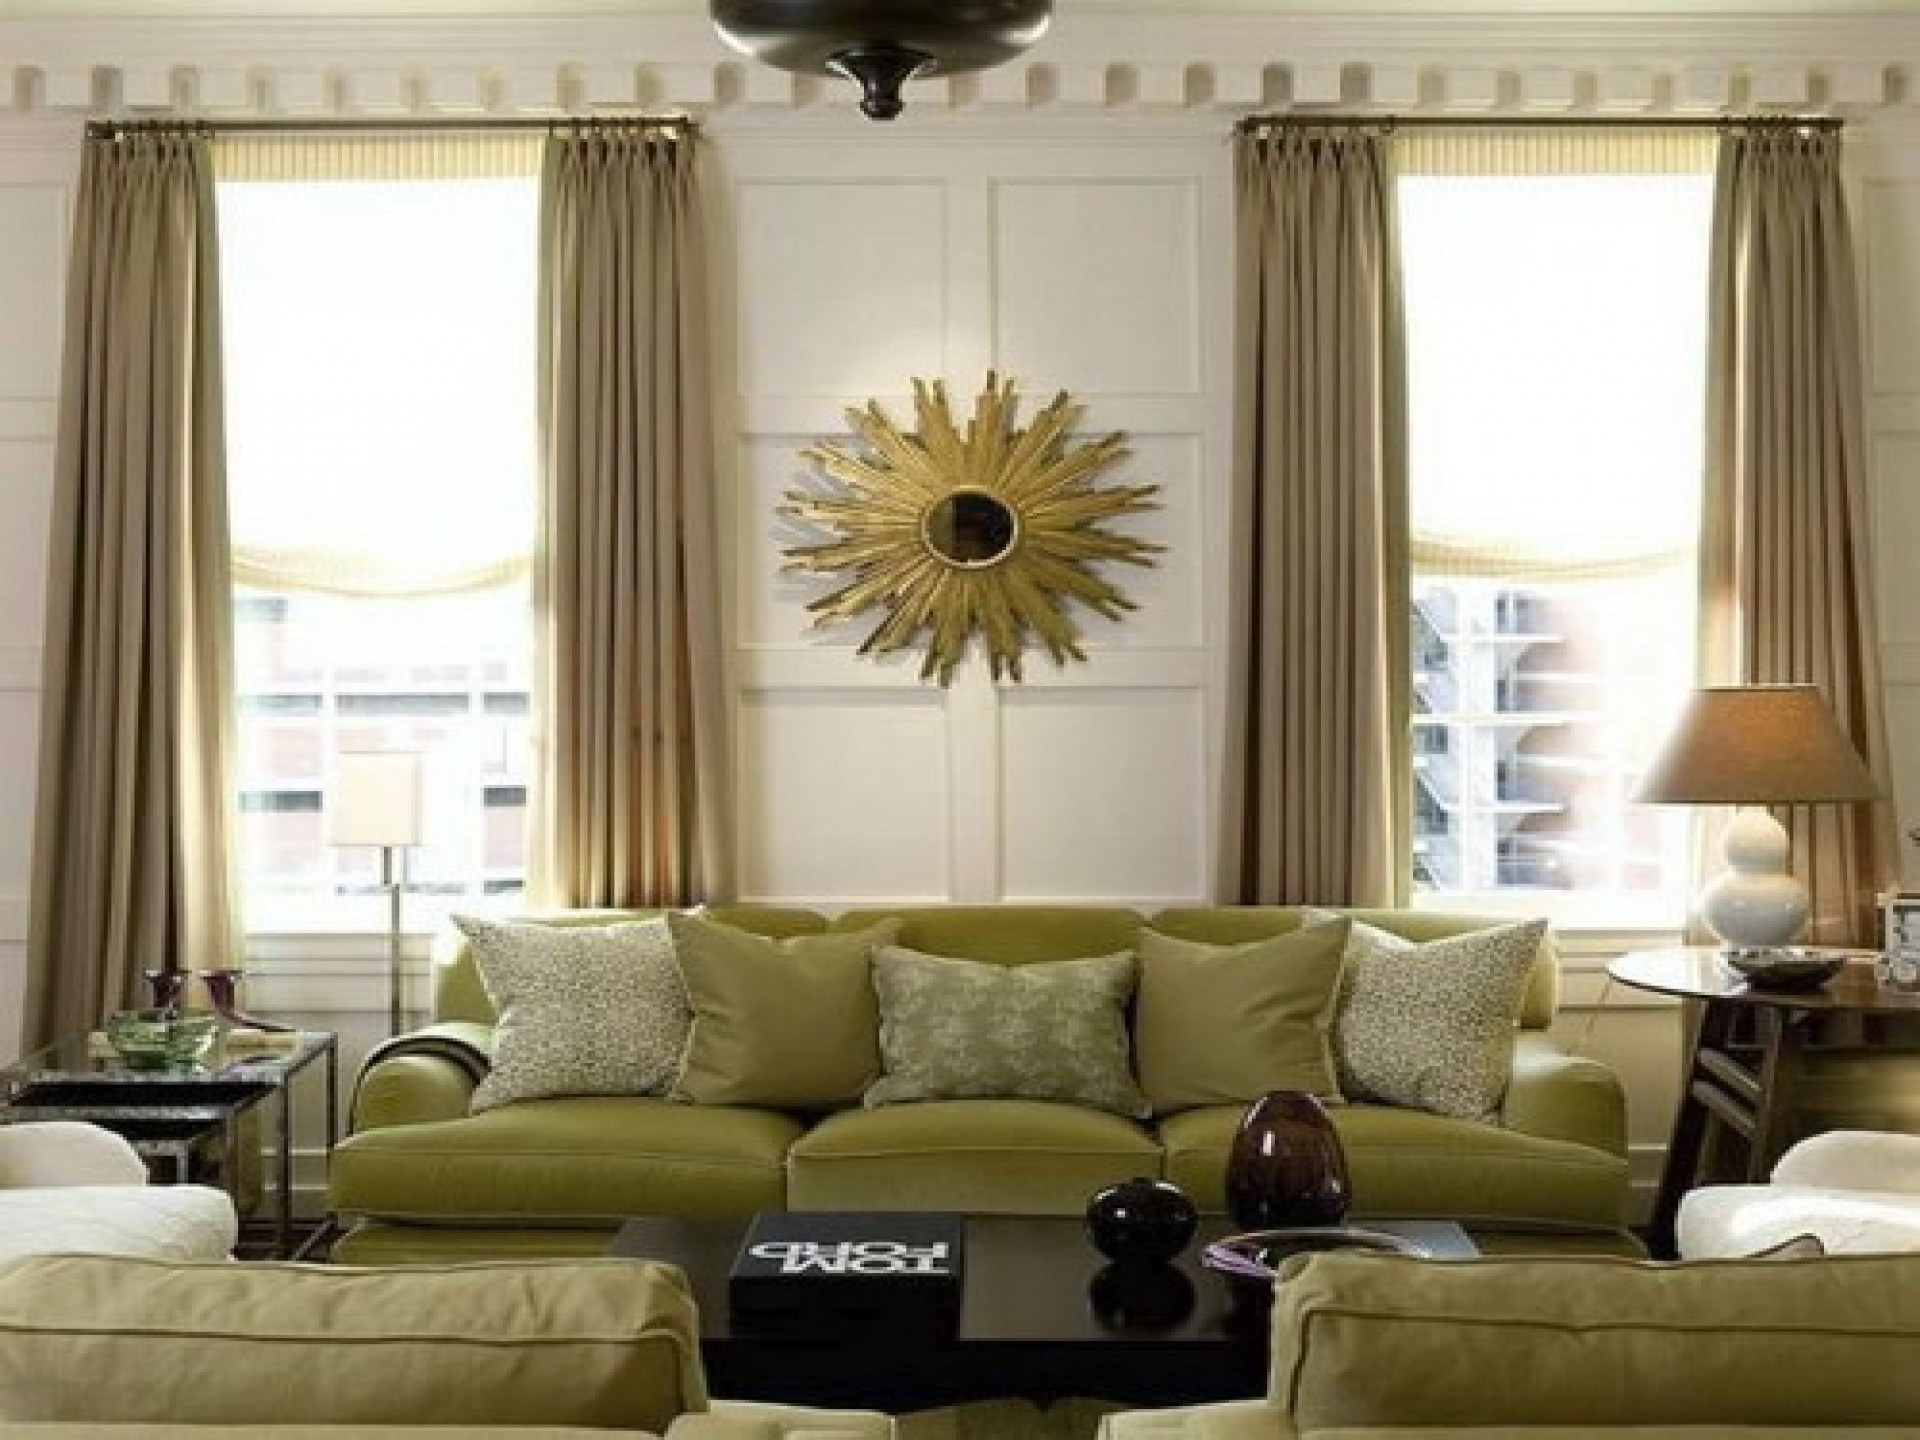 Extraordinary Design Ideas Of Curtain Styles For Living Room With Comely Light Brown Color Curtains And Combine Extraordinary Window Designs Home Decor Fall Home Decor Nicole Miller Decorators Collect Interior Design Center Inspiration